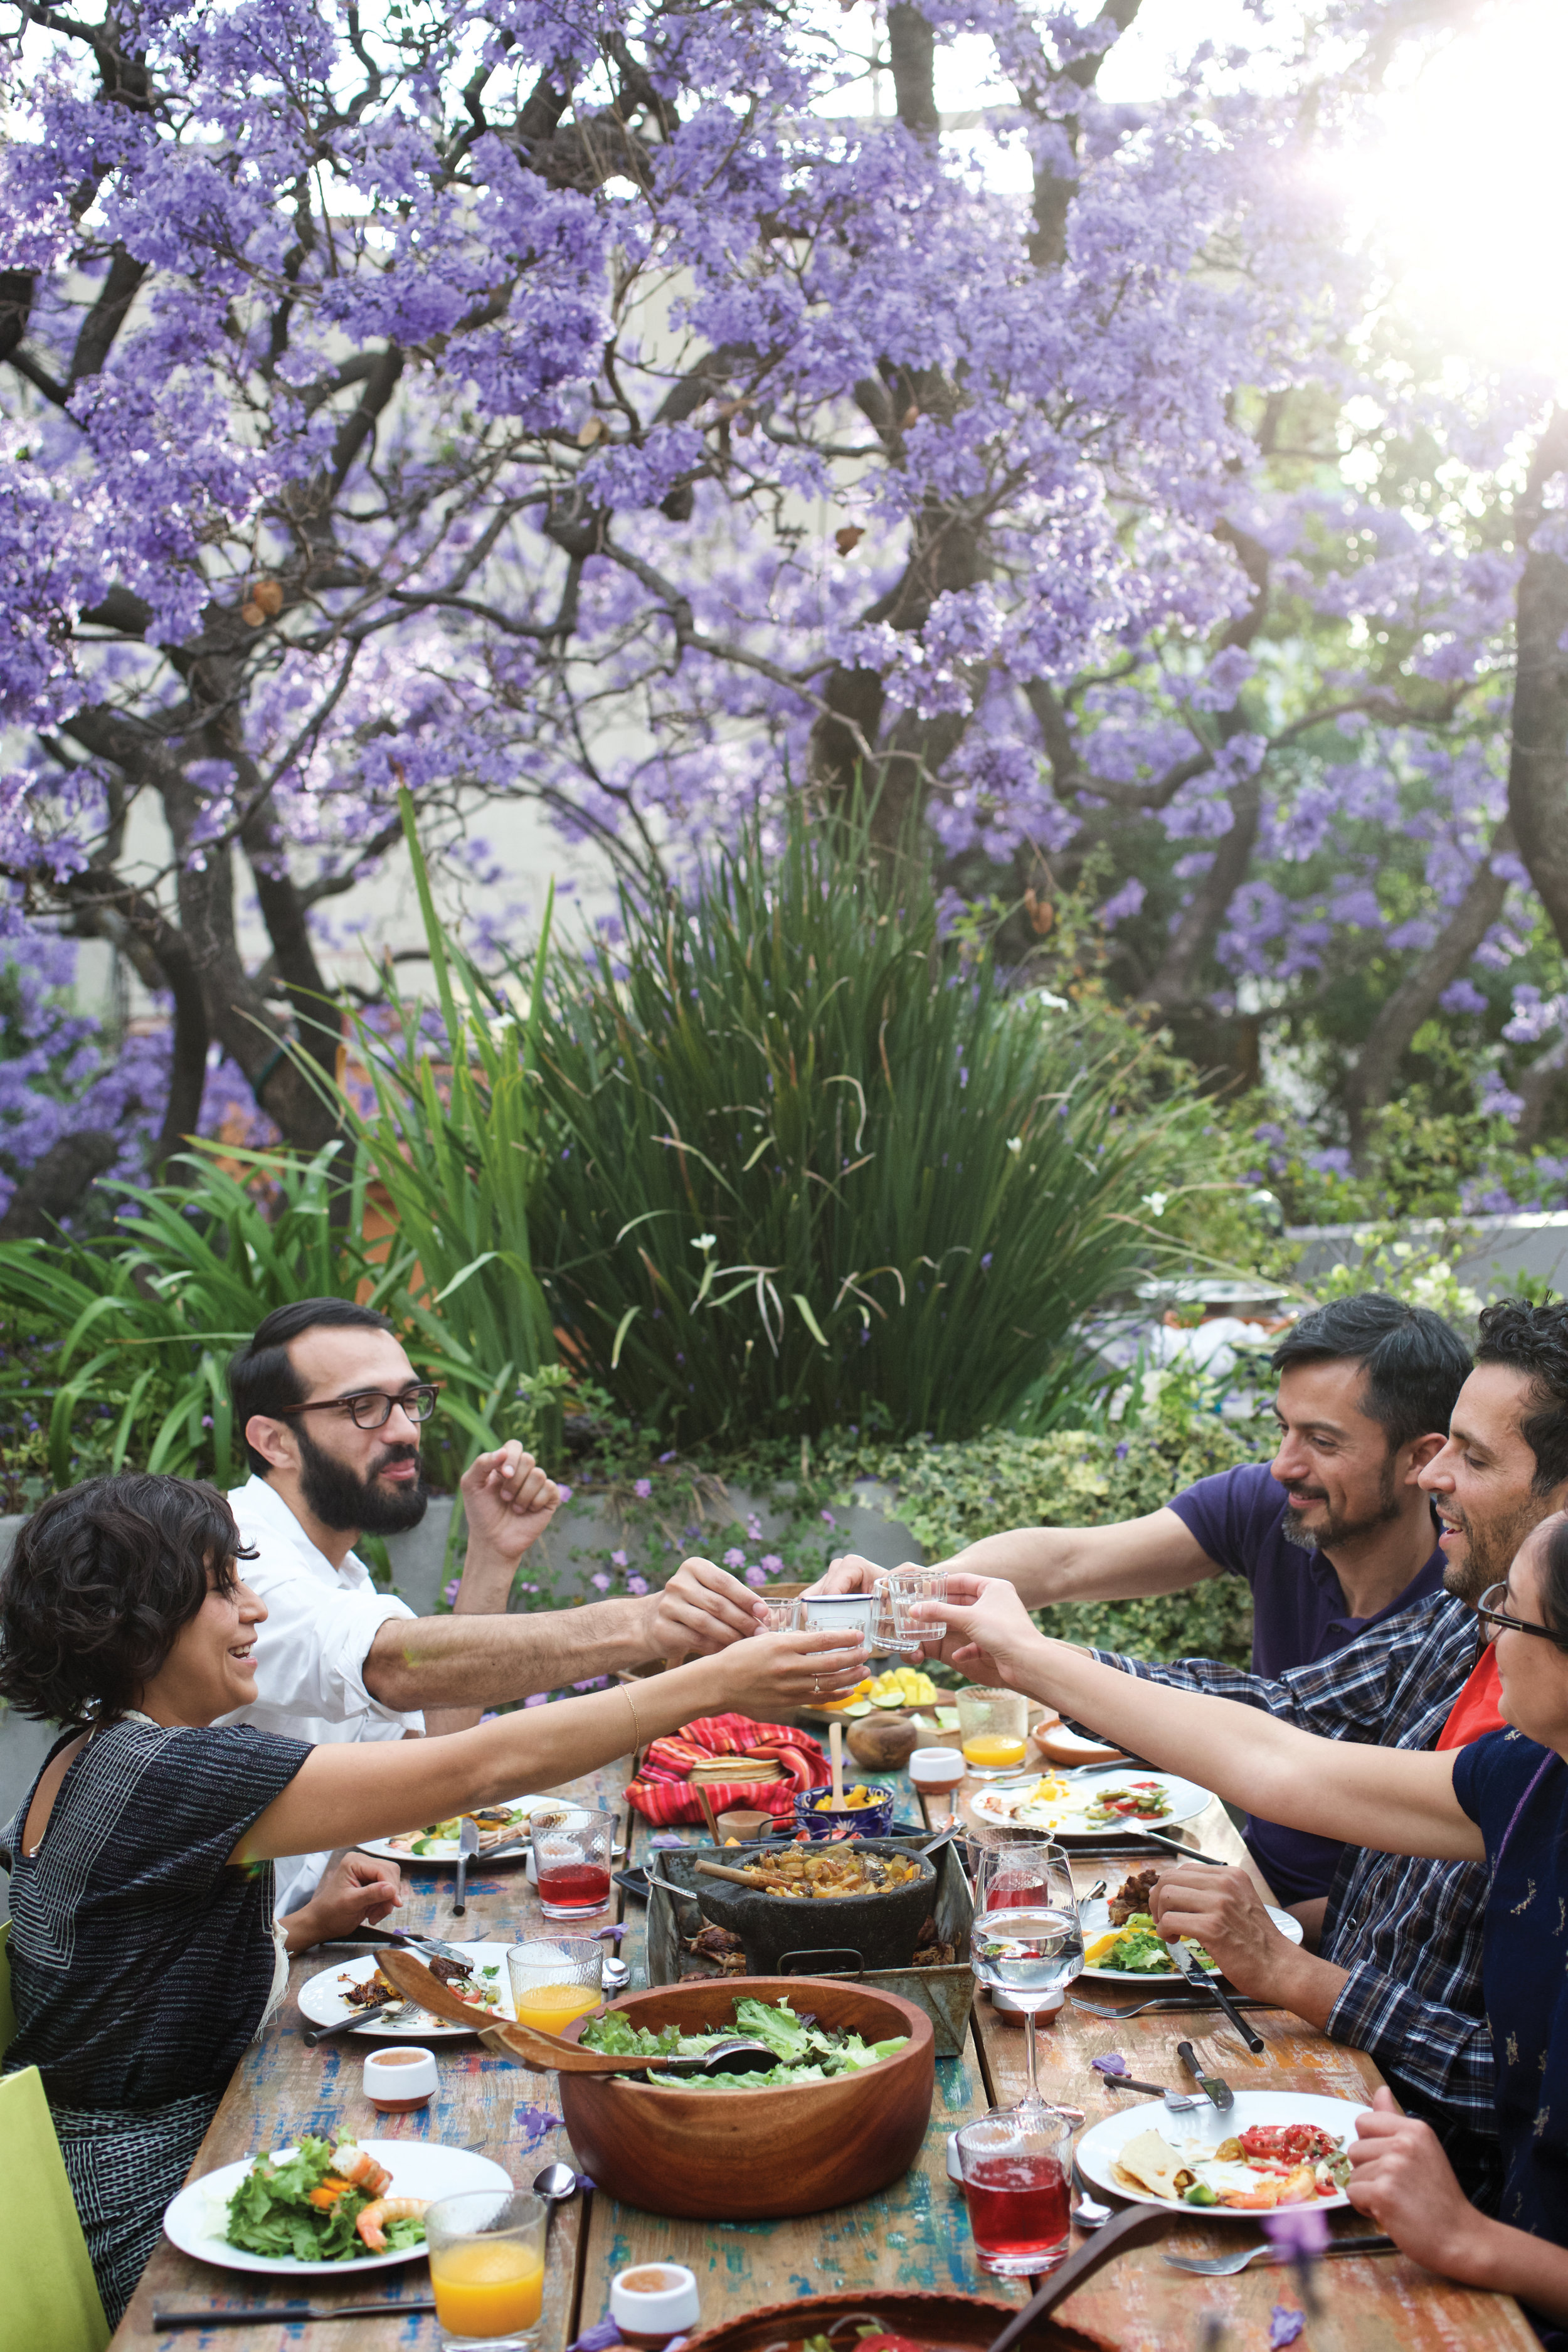 Copy of group saying cheers at a lunch under a jacaranda tree